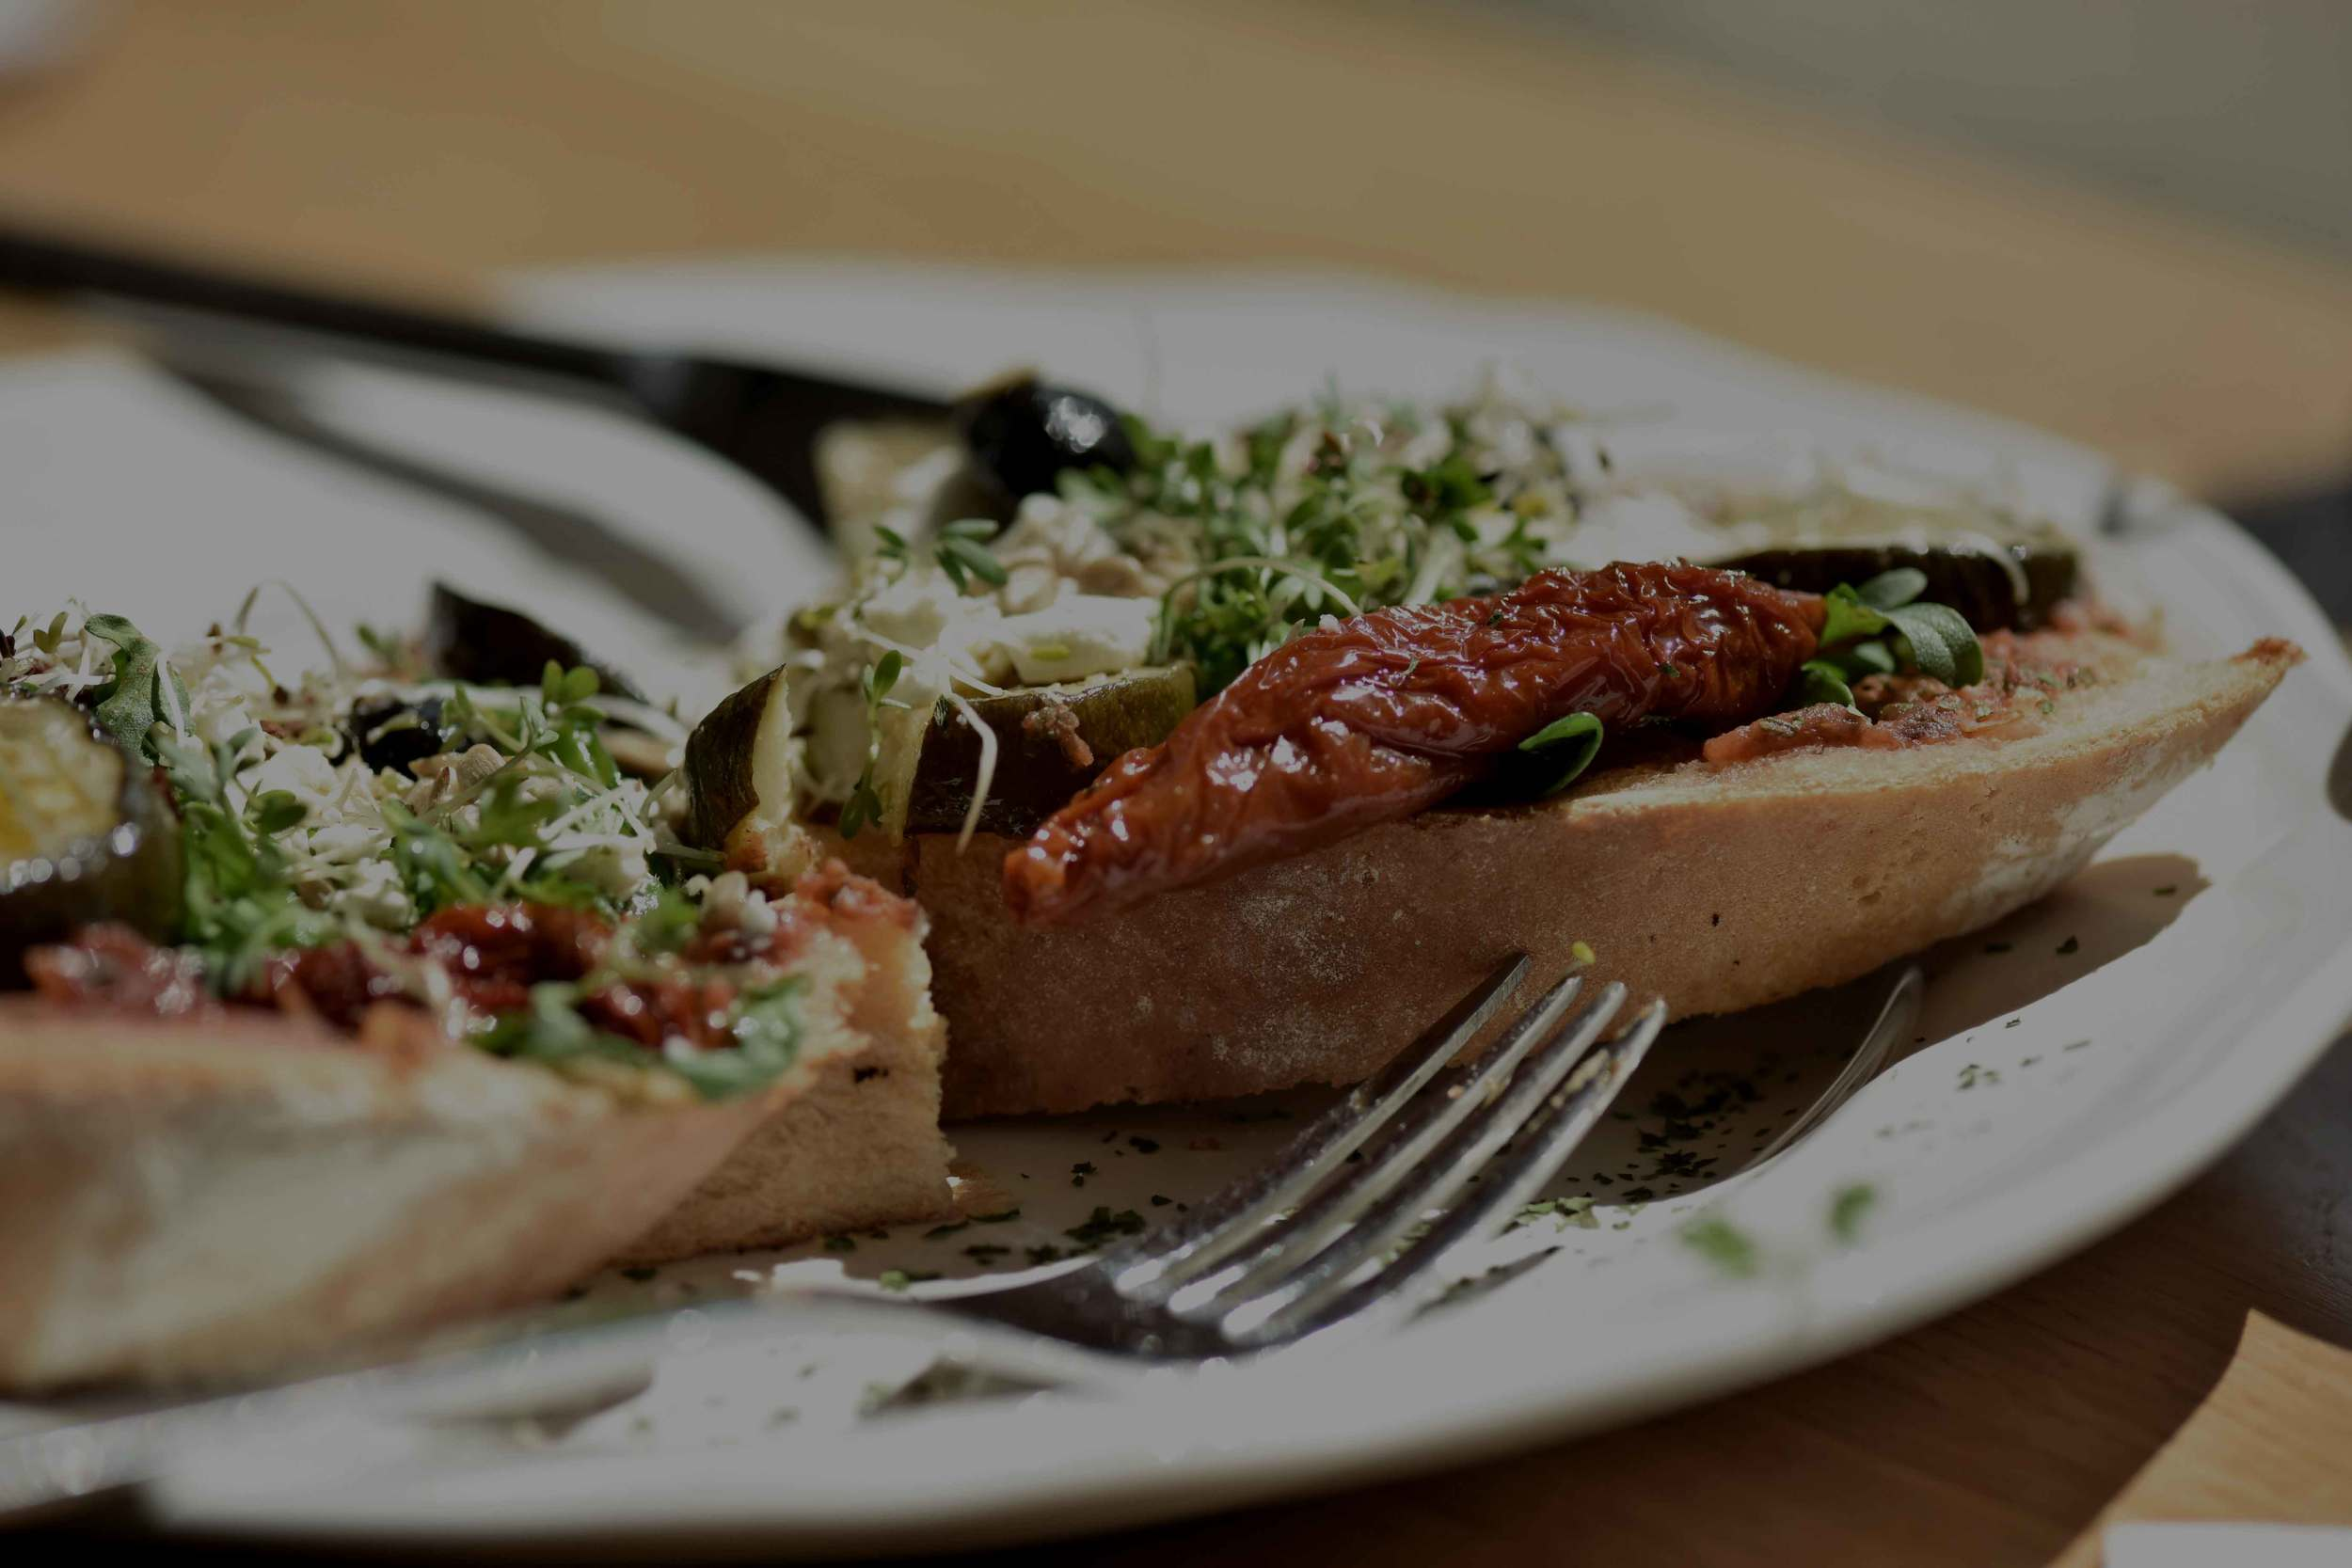 Delicious bruschetta for lunch! Ratingen, Germany. Image©sourcingstyle.com, Photo: Nicola Nolting